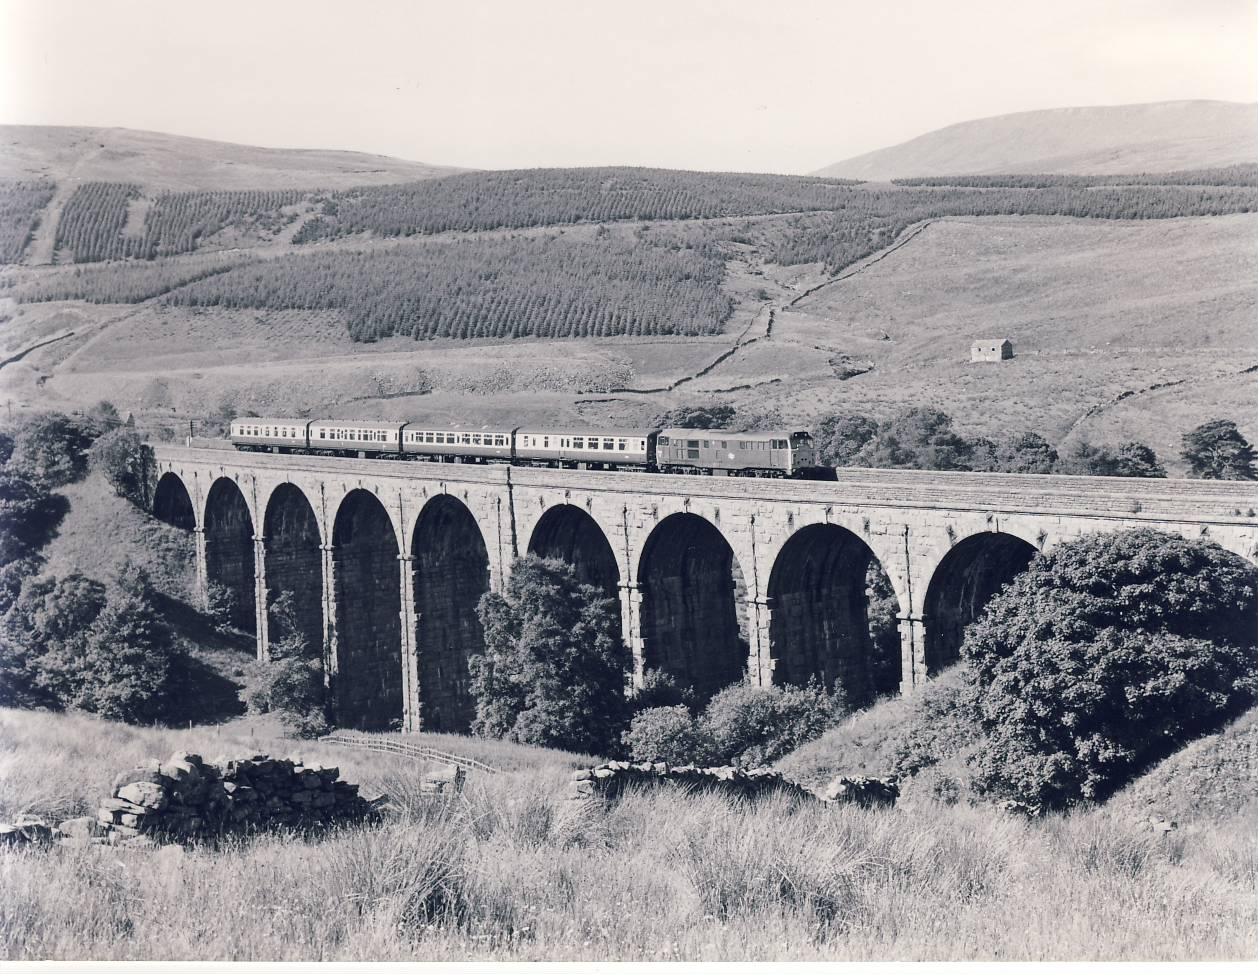 1982 DENT HEAD VIADUCT 31.188 Train Photo refSC145 Measure approx 6.5 x 8.5 inches / 16cm x 21cm - an original 'W.A.Sharman' black and white photographic print pre-owned item in very good condition. Details on reverse.